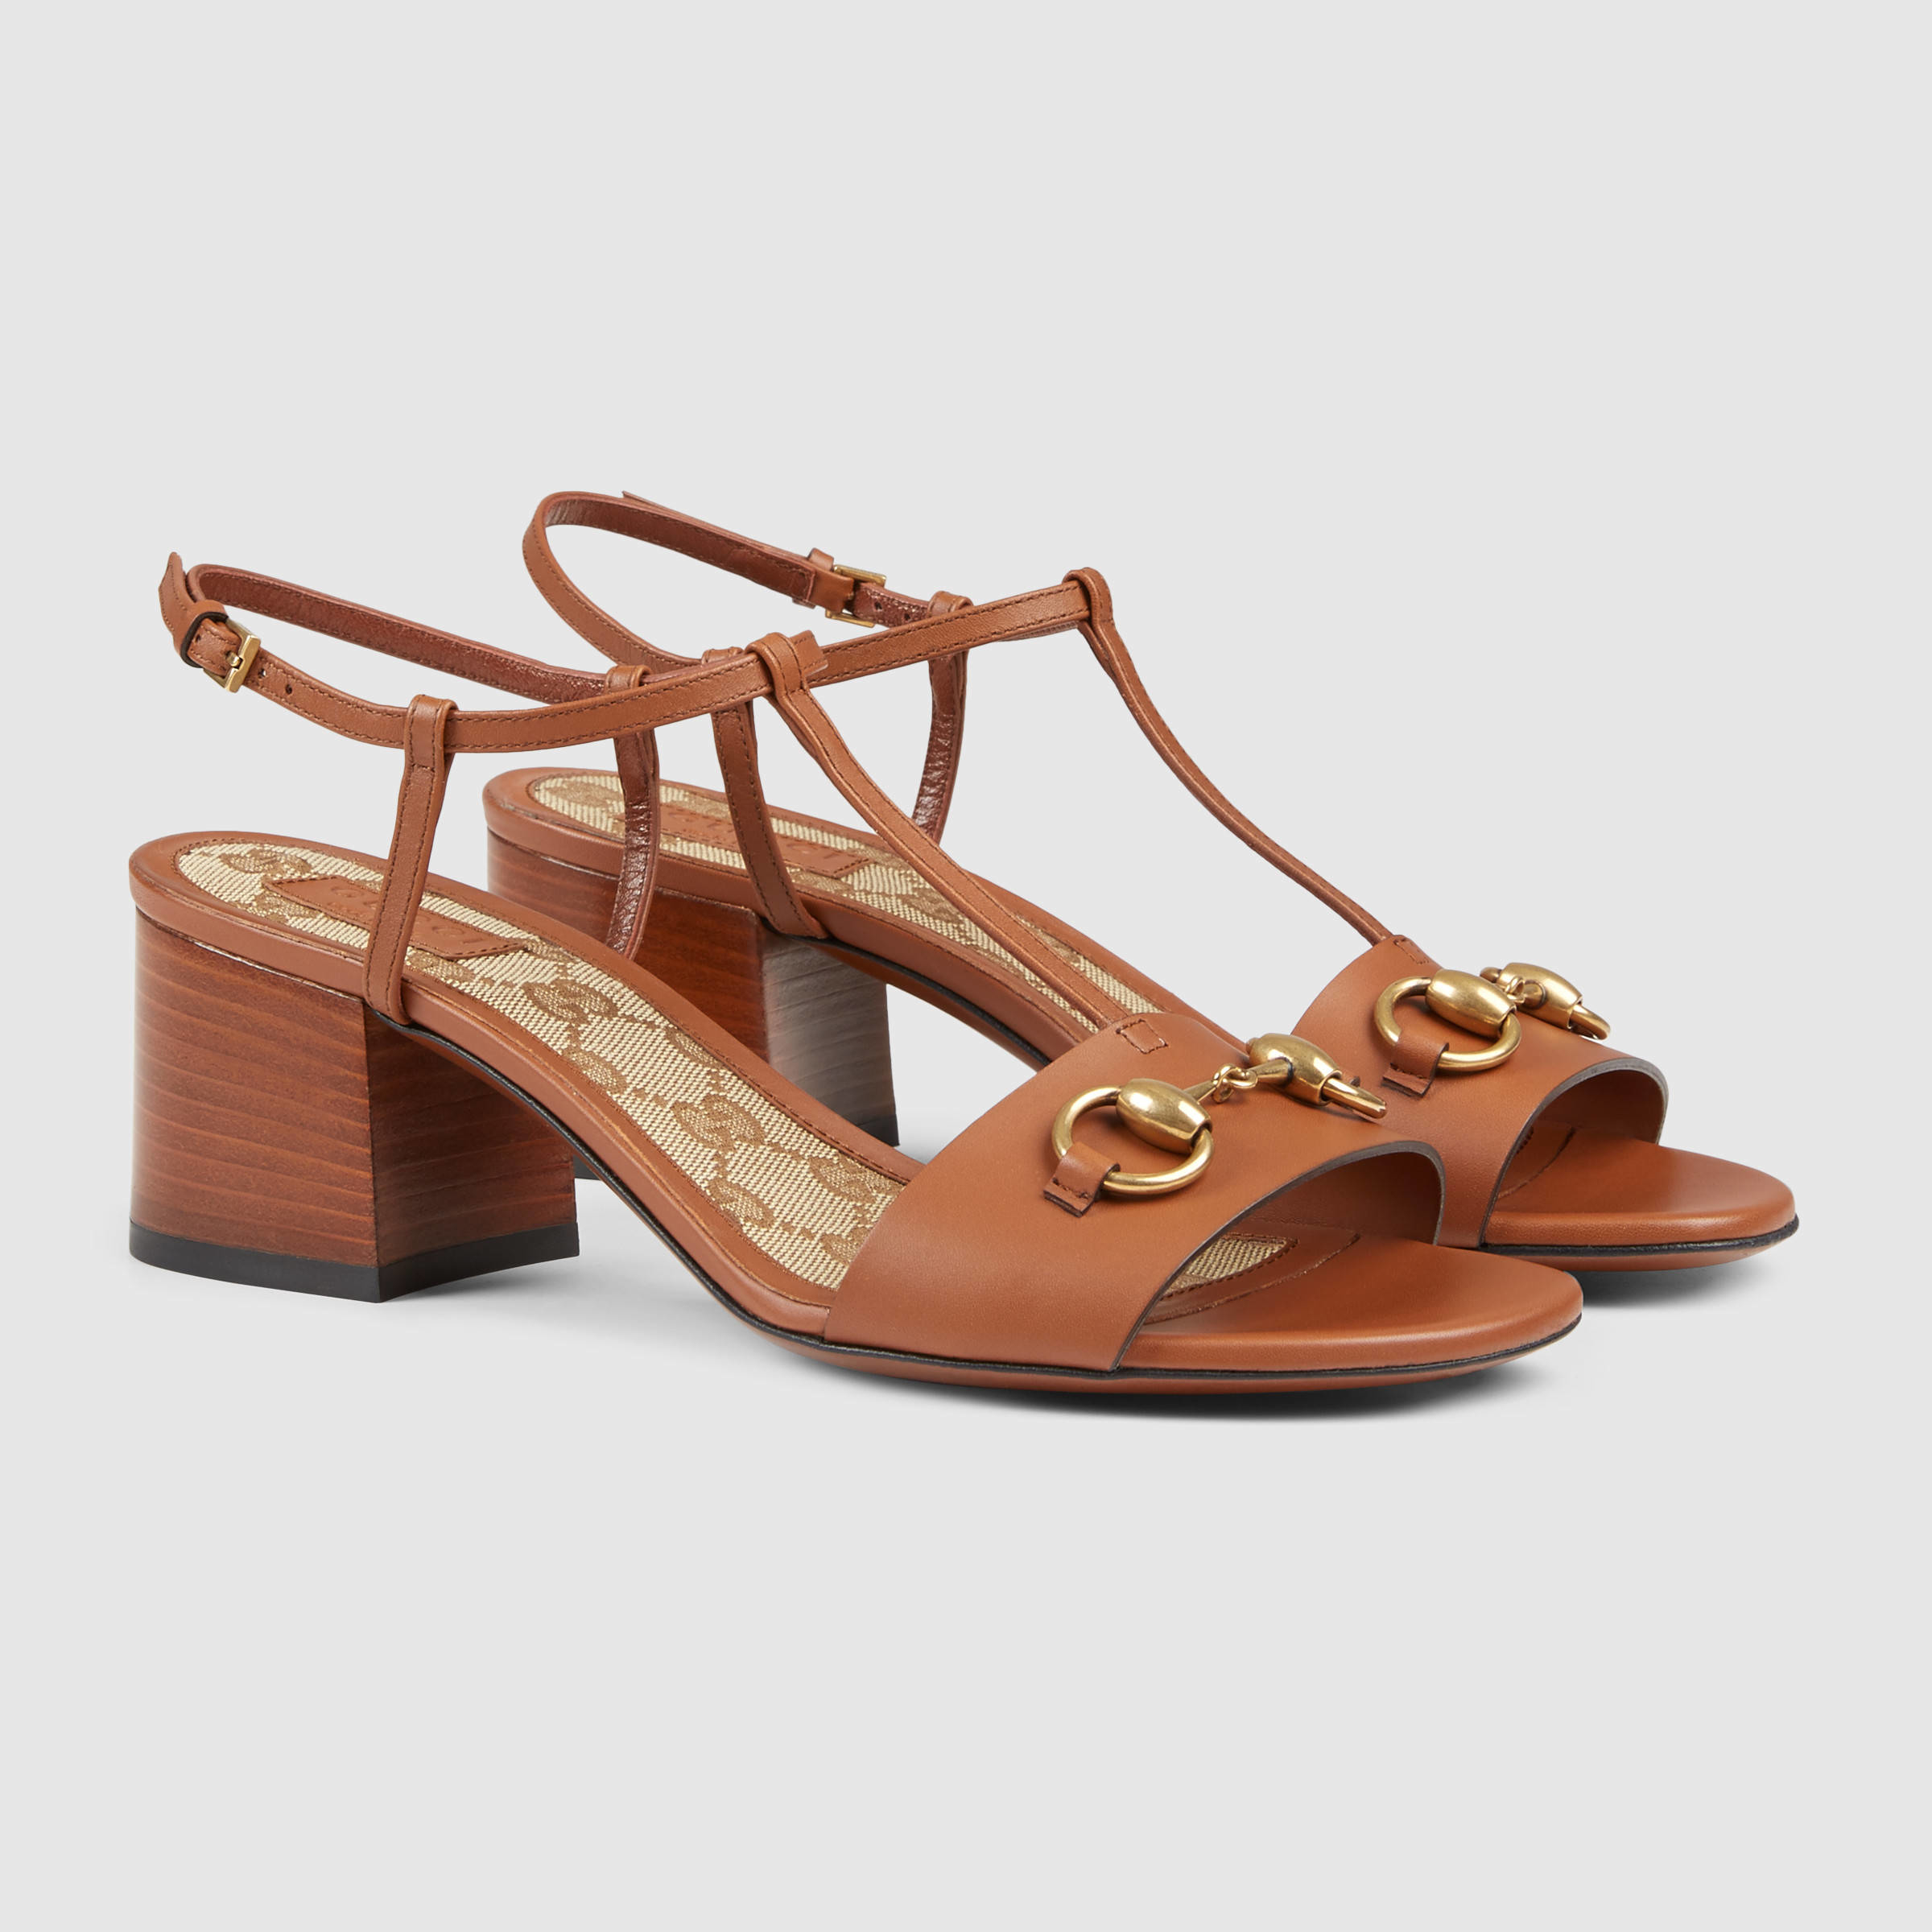 1099f918f9b Lyst - Gucci Leather Mid-heel Sandal in Brown